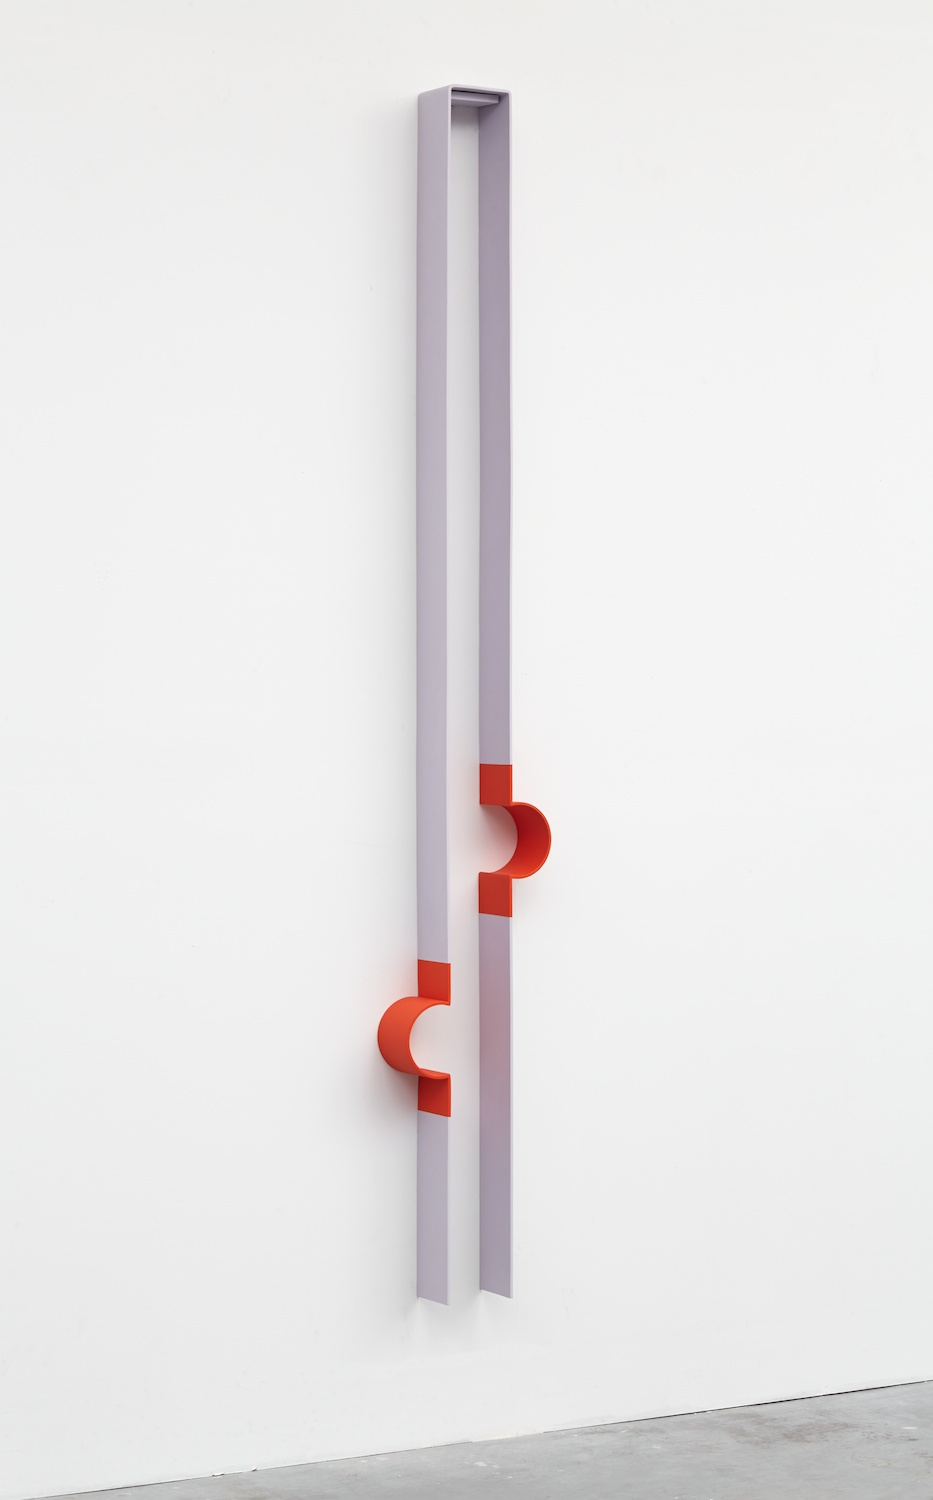 "Lisa Williamson Bump, Neoprene 2013 Acrylic on powder-coated steel 80"" x 14"" x 4"" LW121"